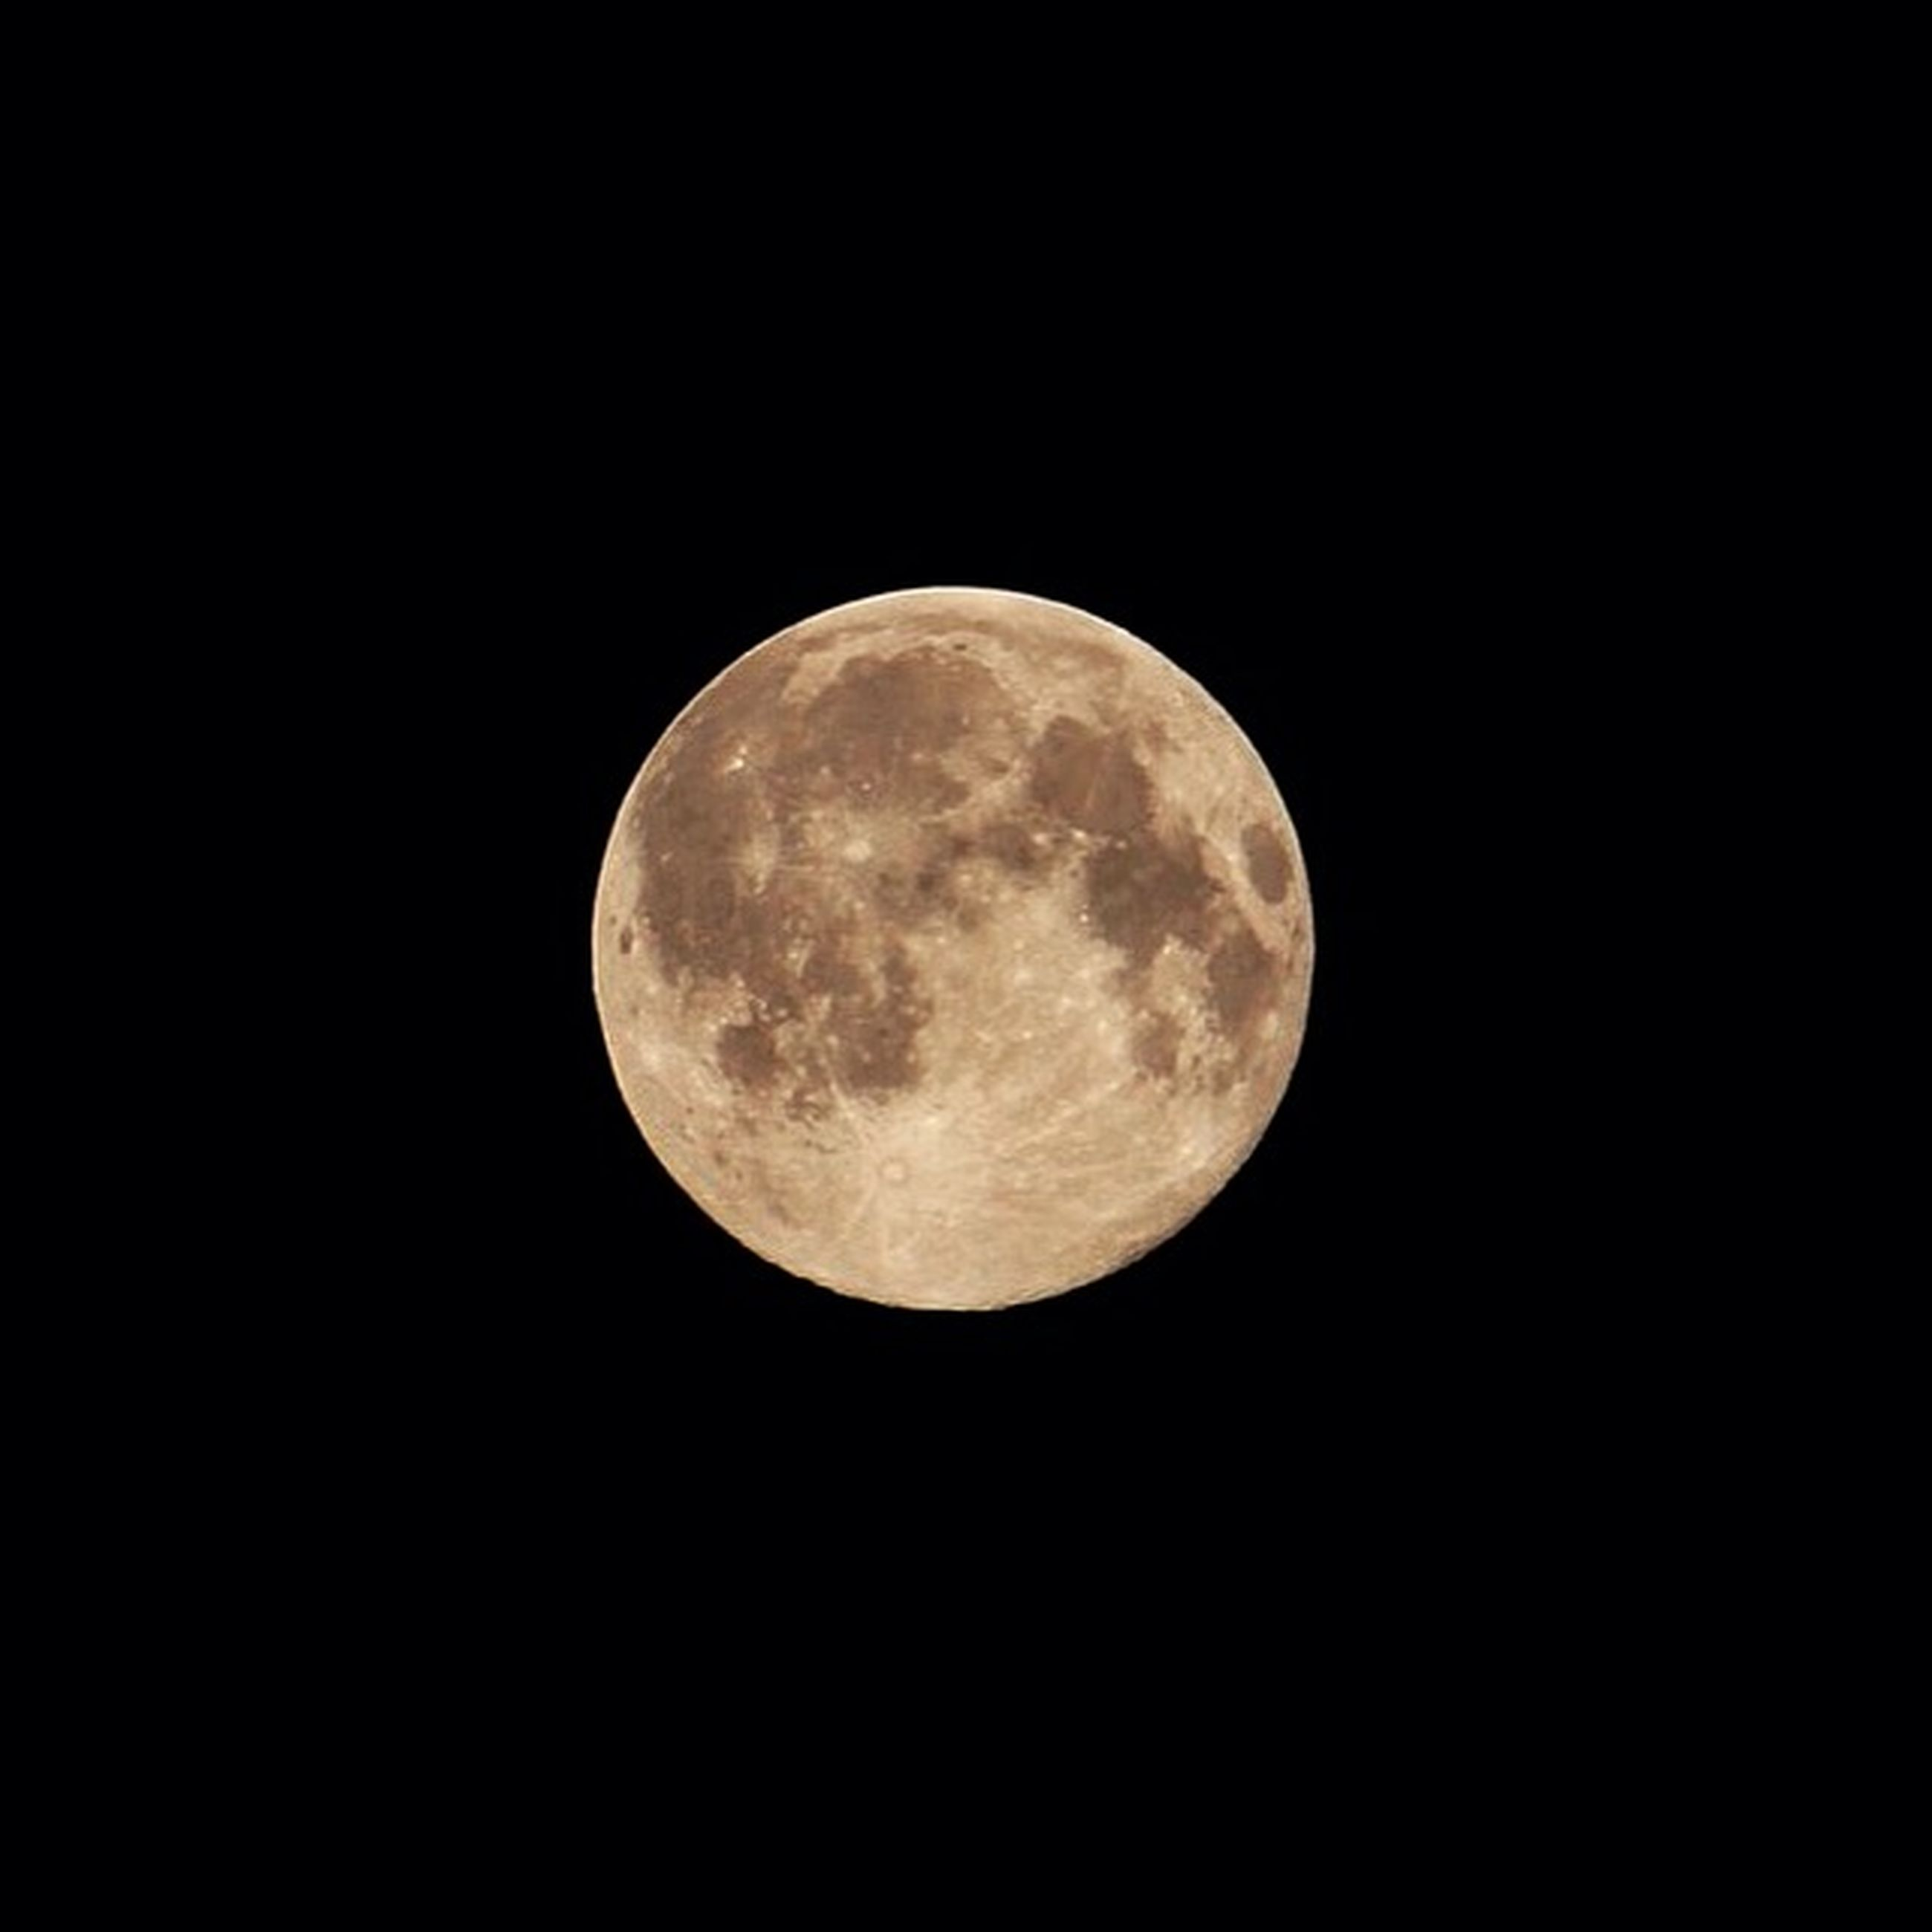 moon, astronomy, night, full moon, planetary moon, moon surface, circle, low angle view, beauty in nature, discovery, sphere, tranquil scene, tranquility, scenics, space exploration, copy space, nature, dark, majestic, sky